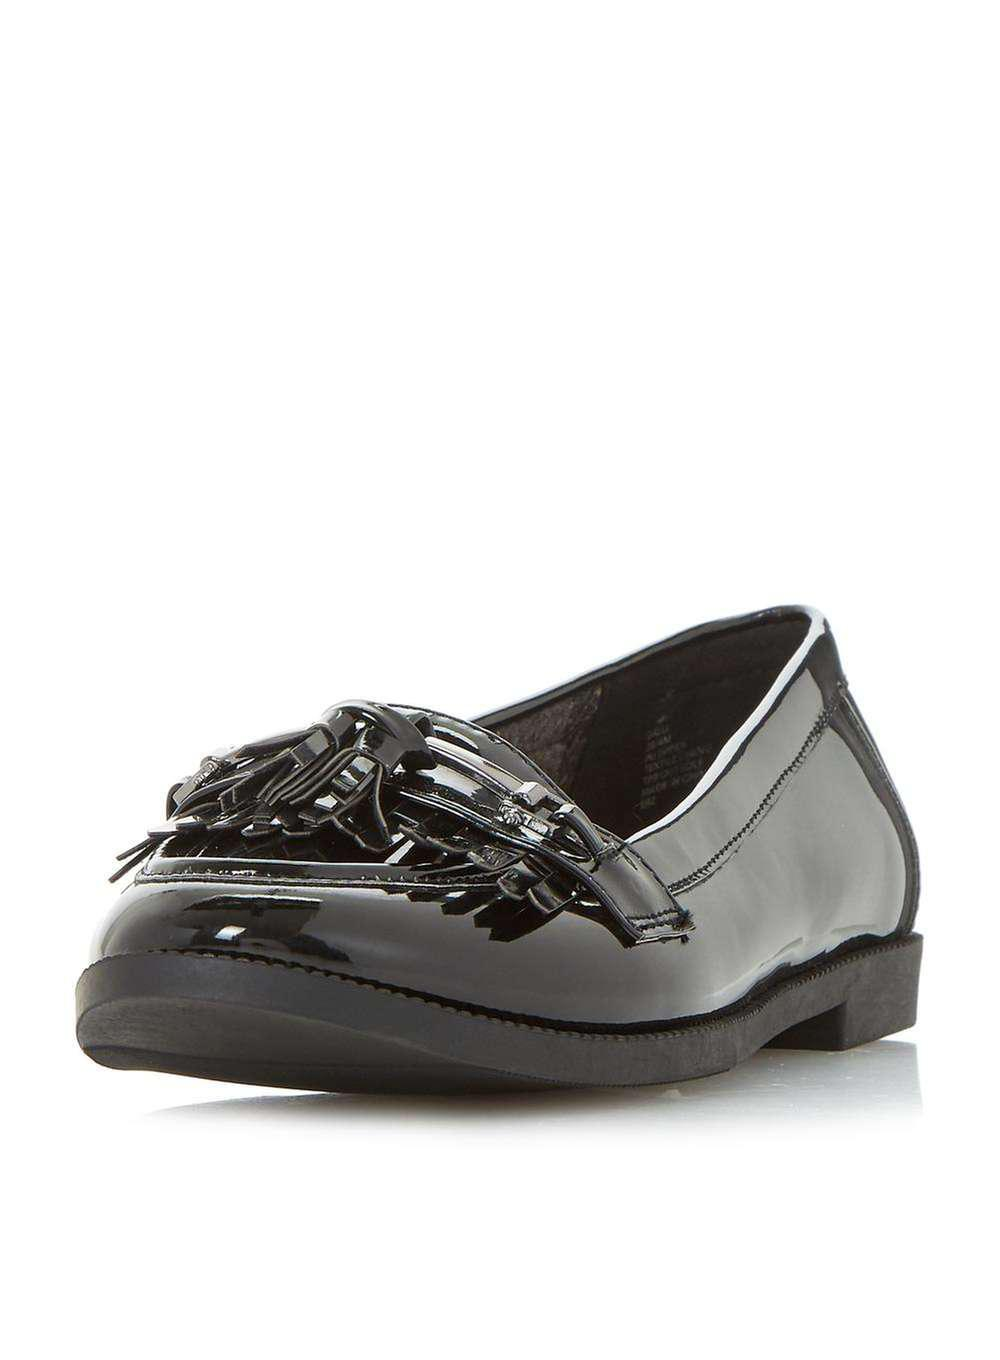 c70d148341e dorothy-perkins-BLACK-Head-Over-Heels-By-Dune-Black-gigli-Loafers.jpeg